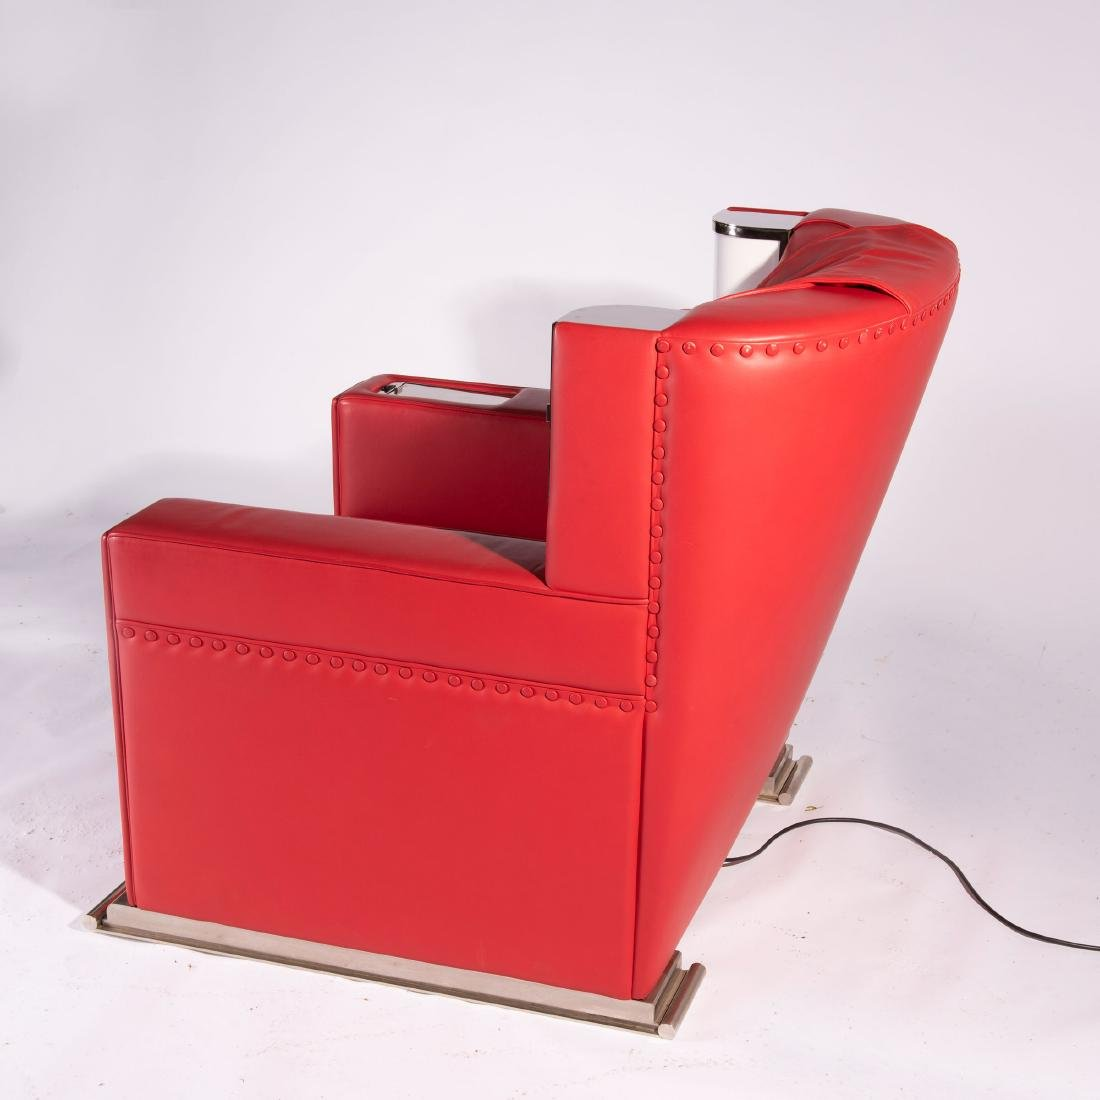 'Red comfortable chair', 1931 - 7